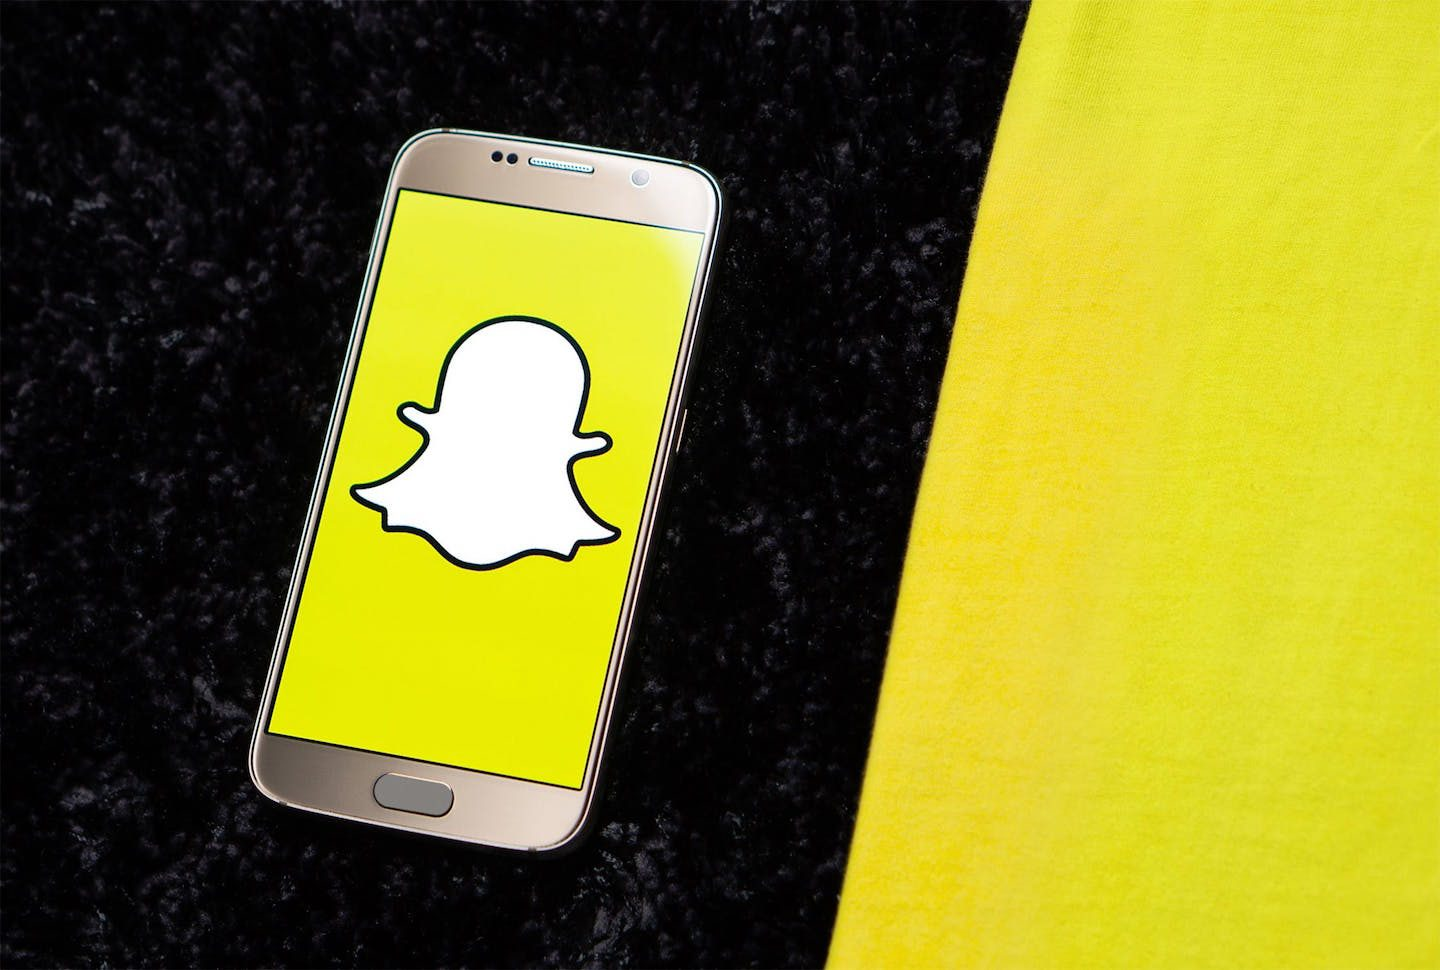 WATCH: Snapchat to make more changes to the app